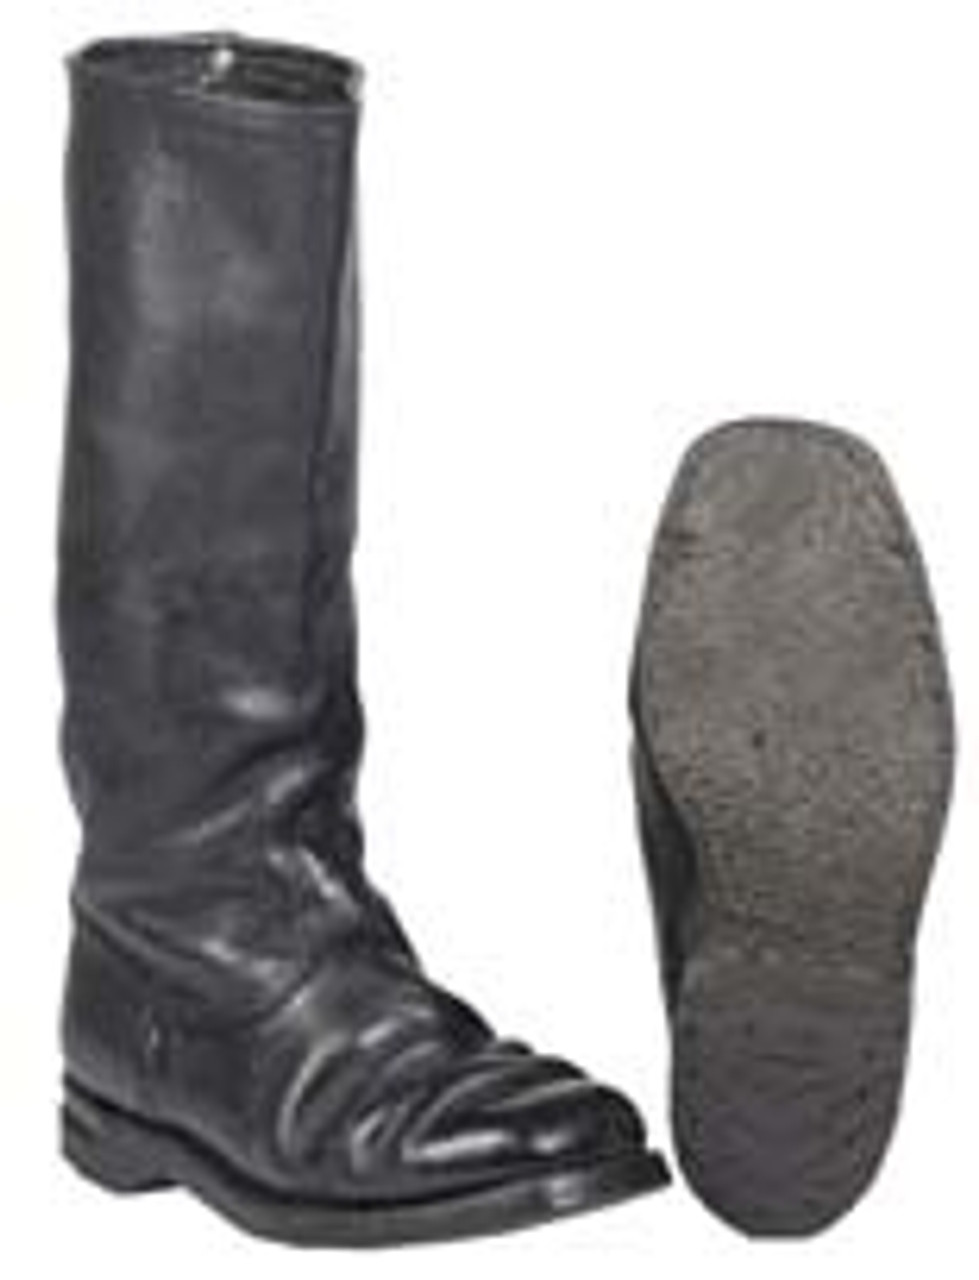 German Police Black Leather Riding Boots from Hessen Antique